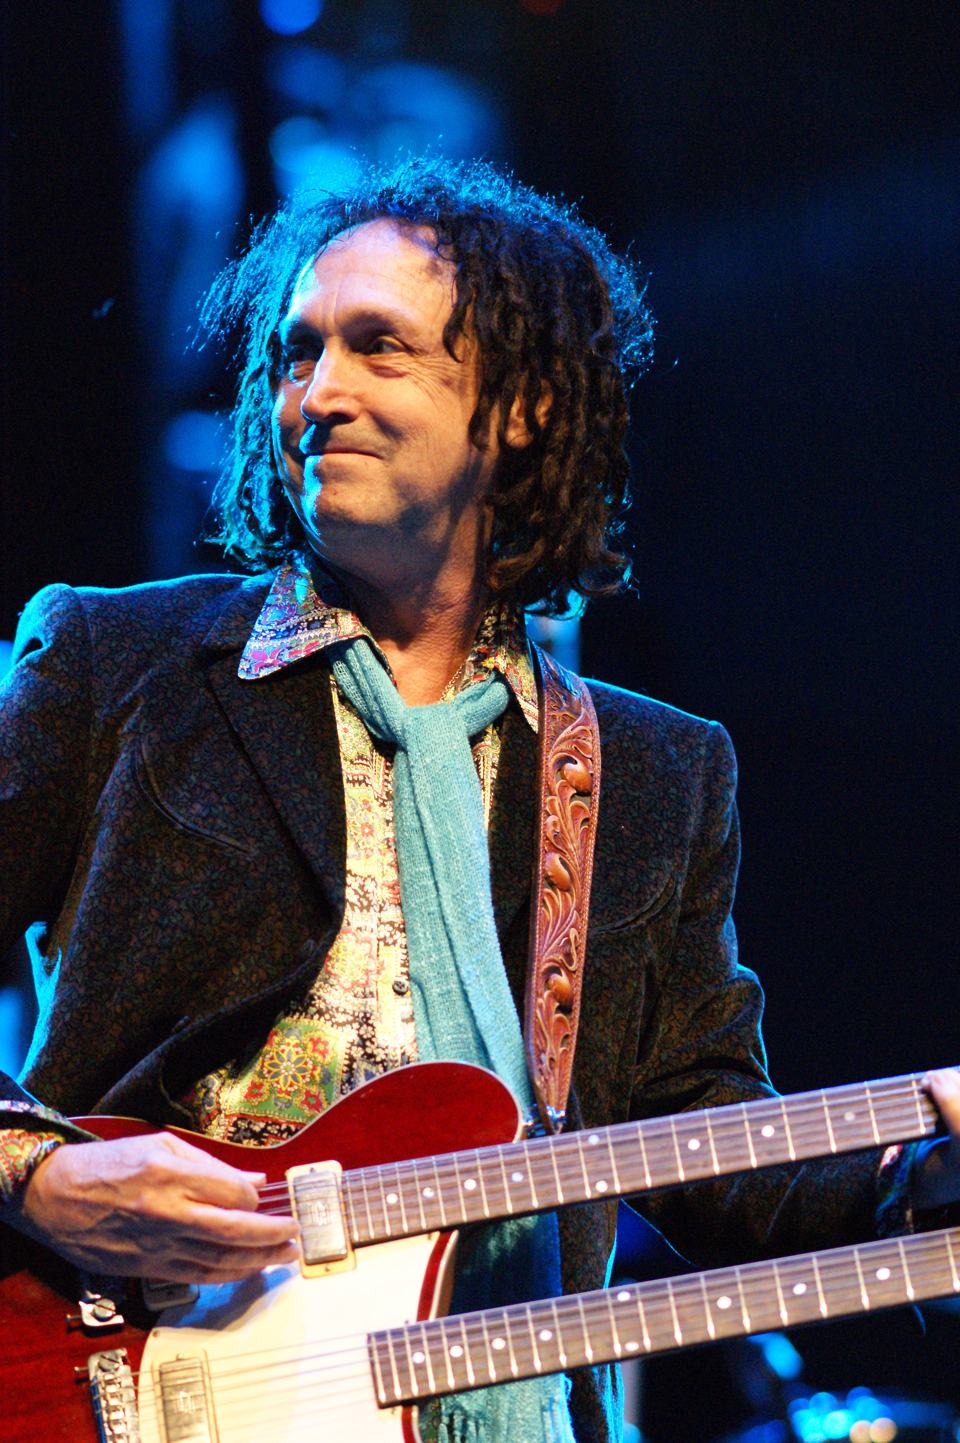 Fulltone - Tone tools for the power-conscious.Mike Campbell